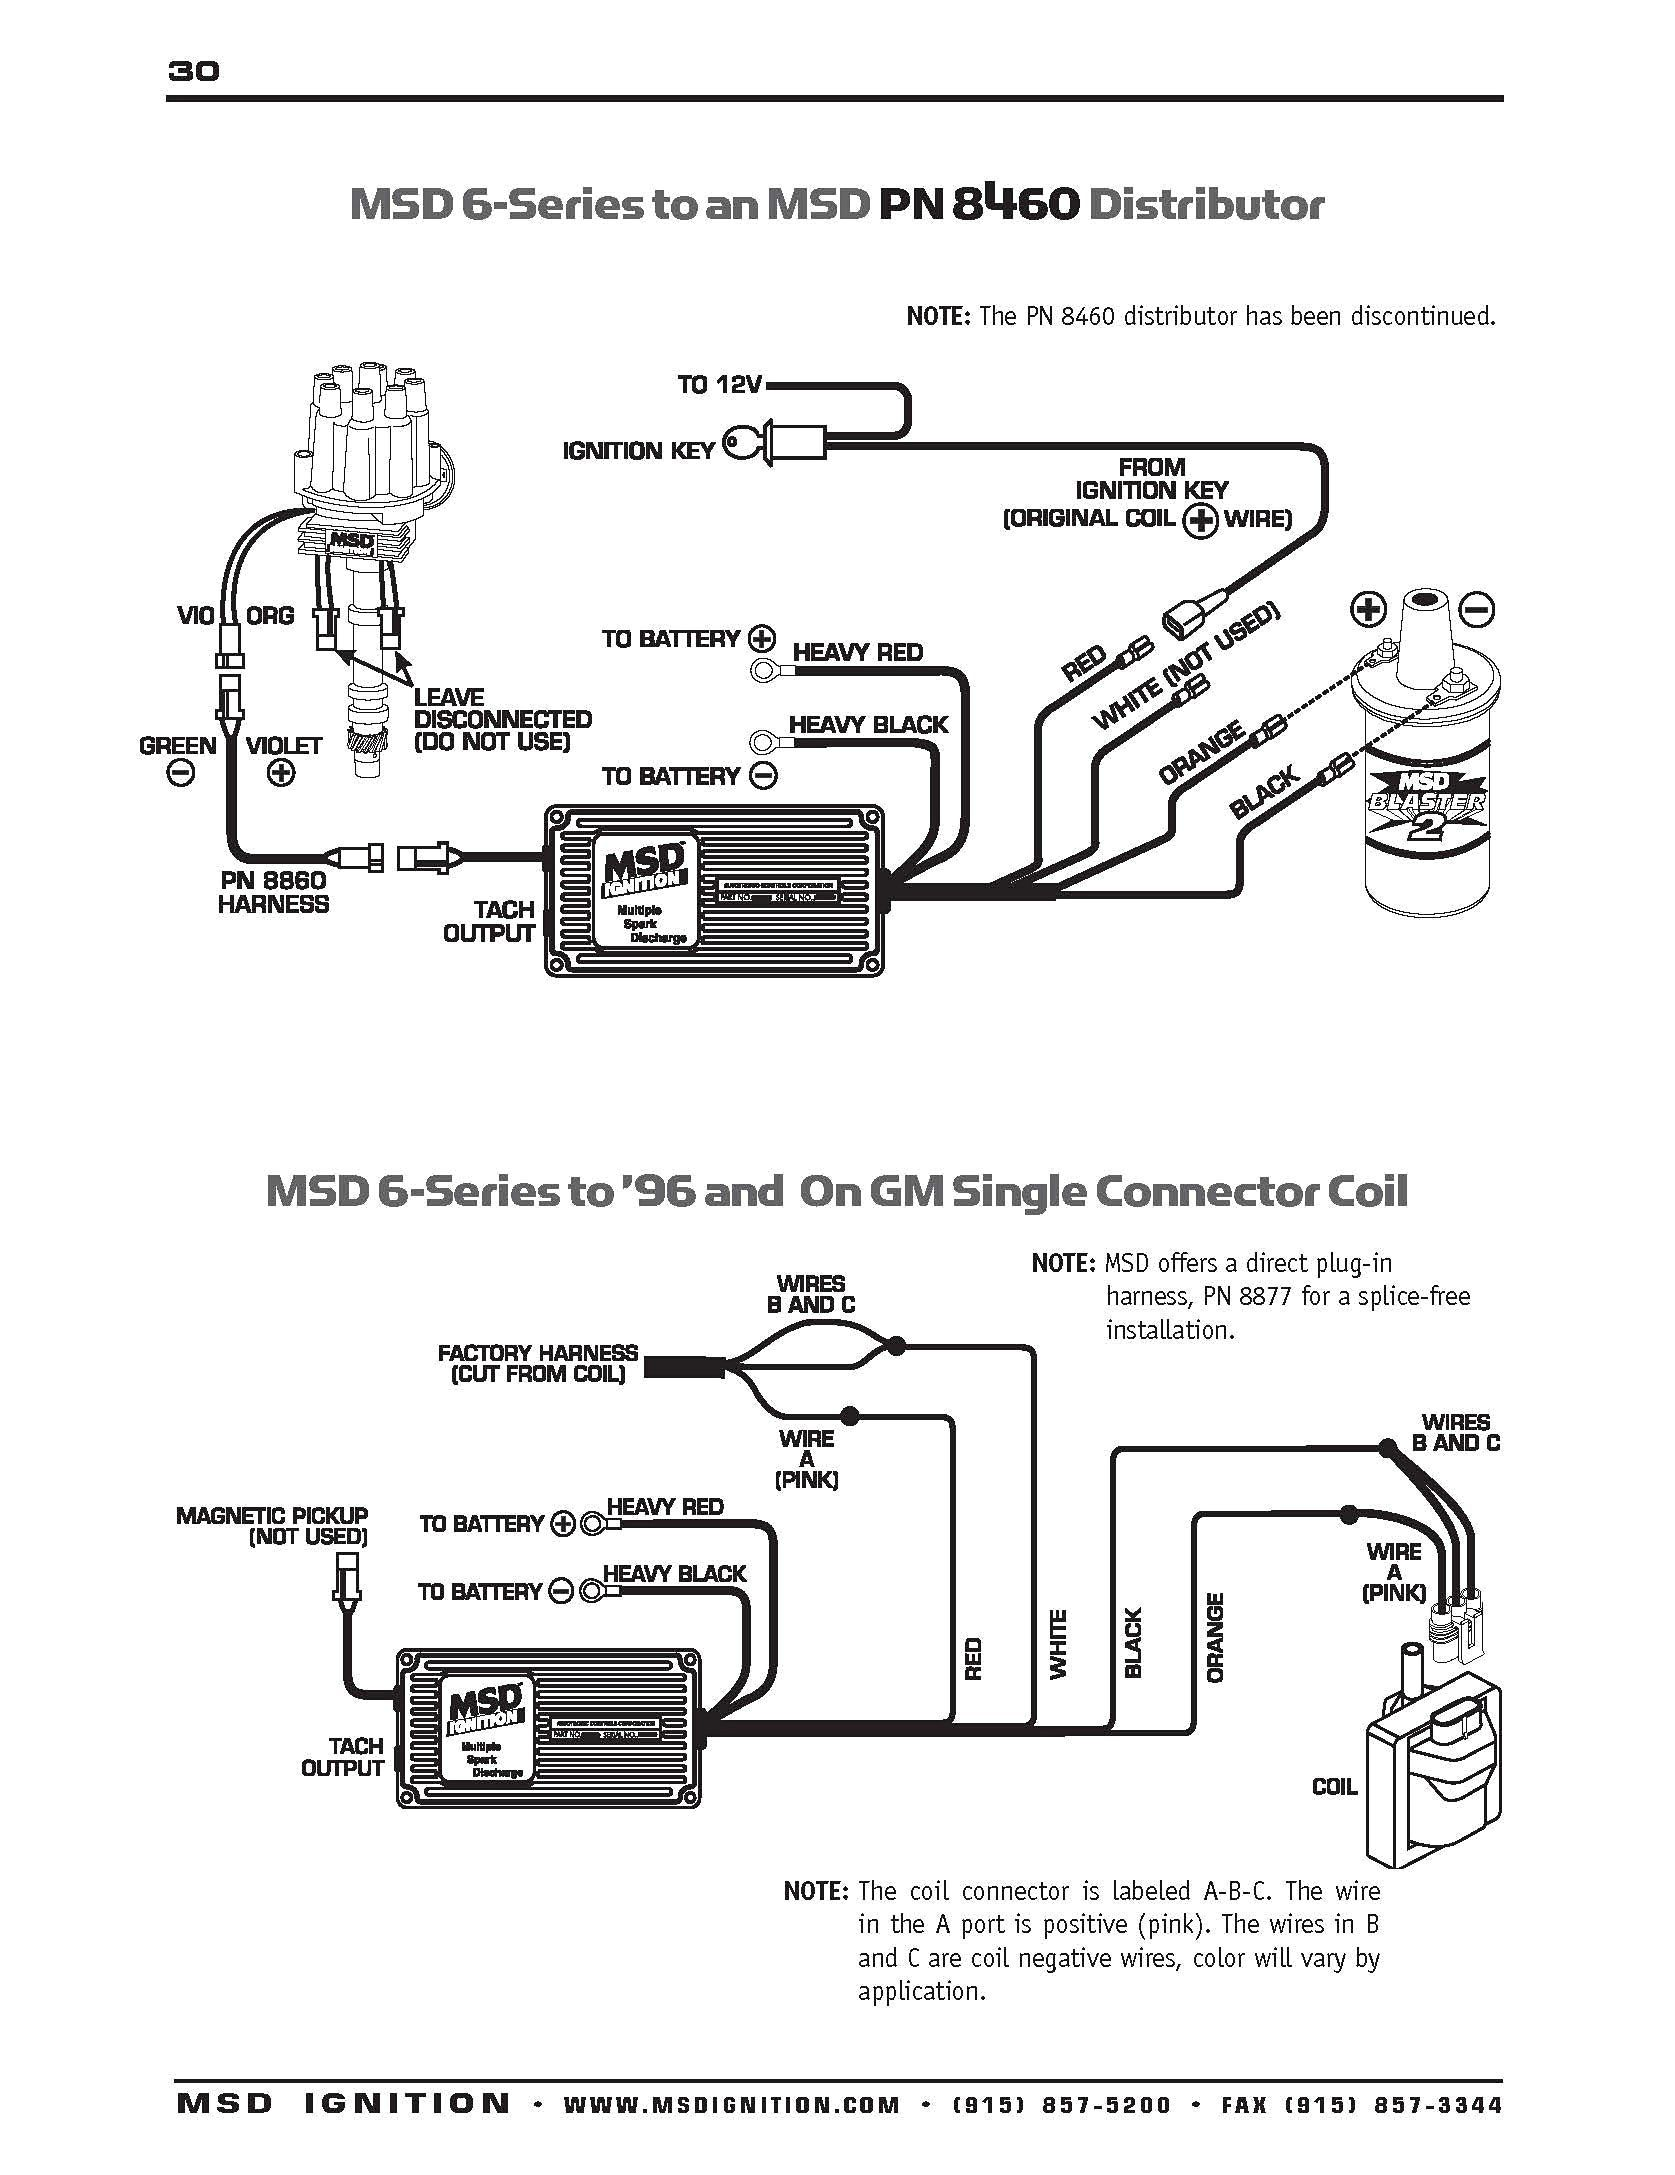 Hei Wiring Diagram Earch For Accel Distributor - Hd-Dump in Accel  Distributor Wiring Diagram - 6390 | Diagram, Msd, Electrical diagramPinterest